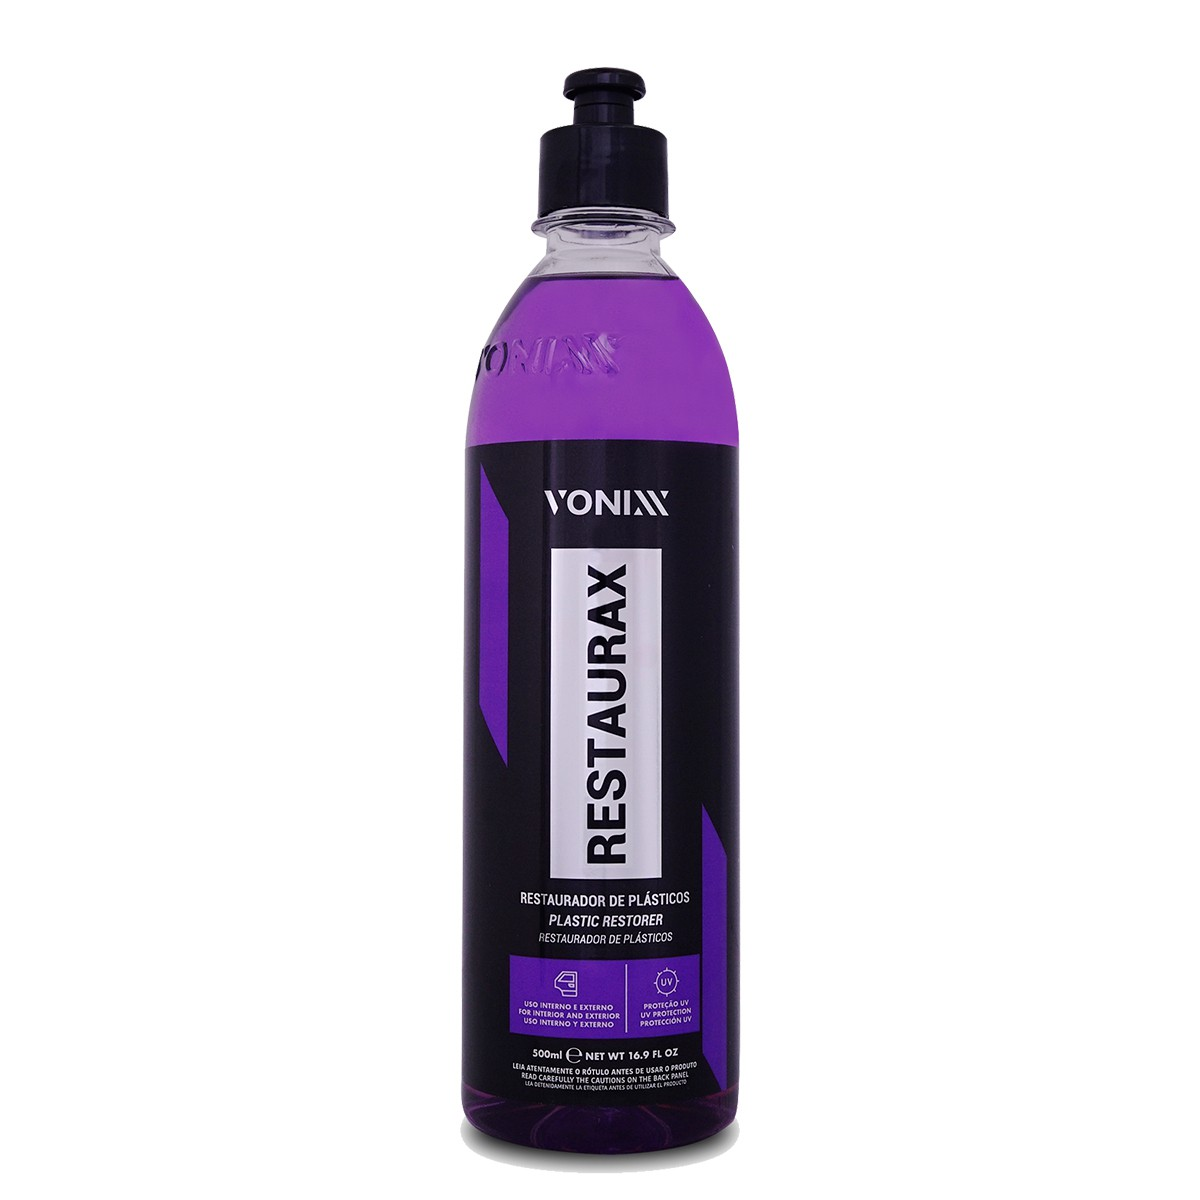 Restaurax 500ml - Vonixx